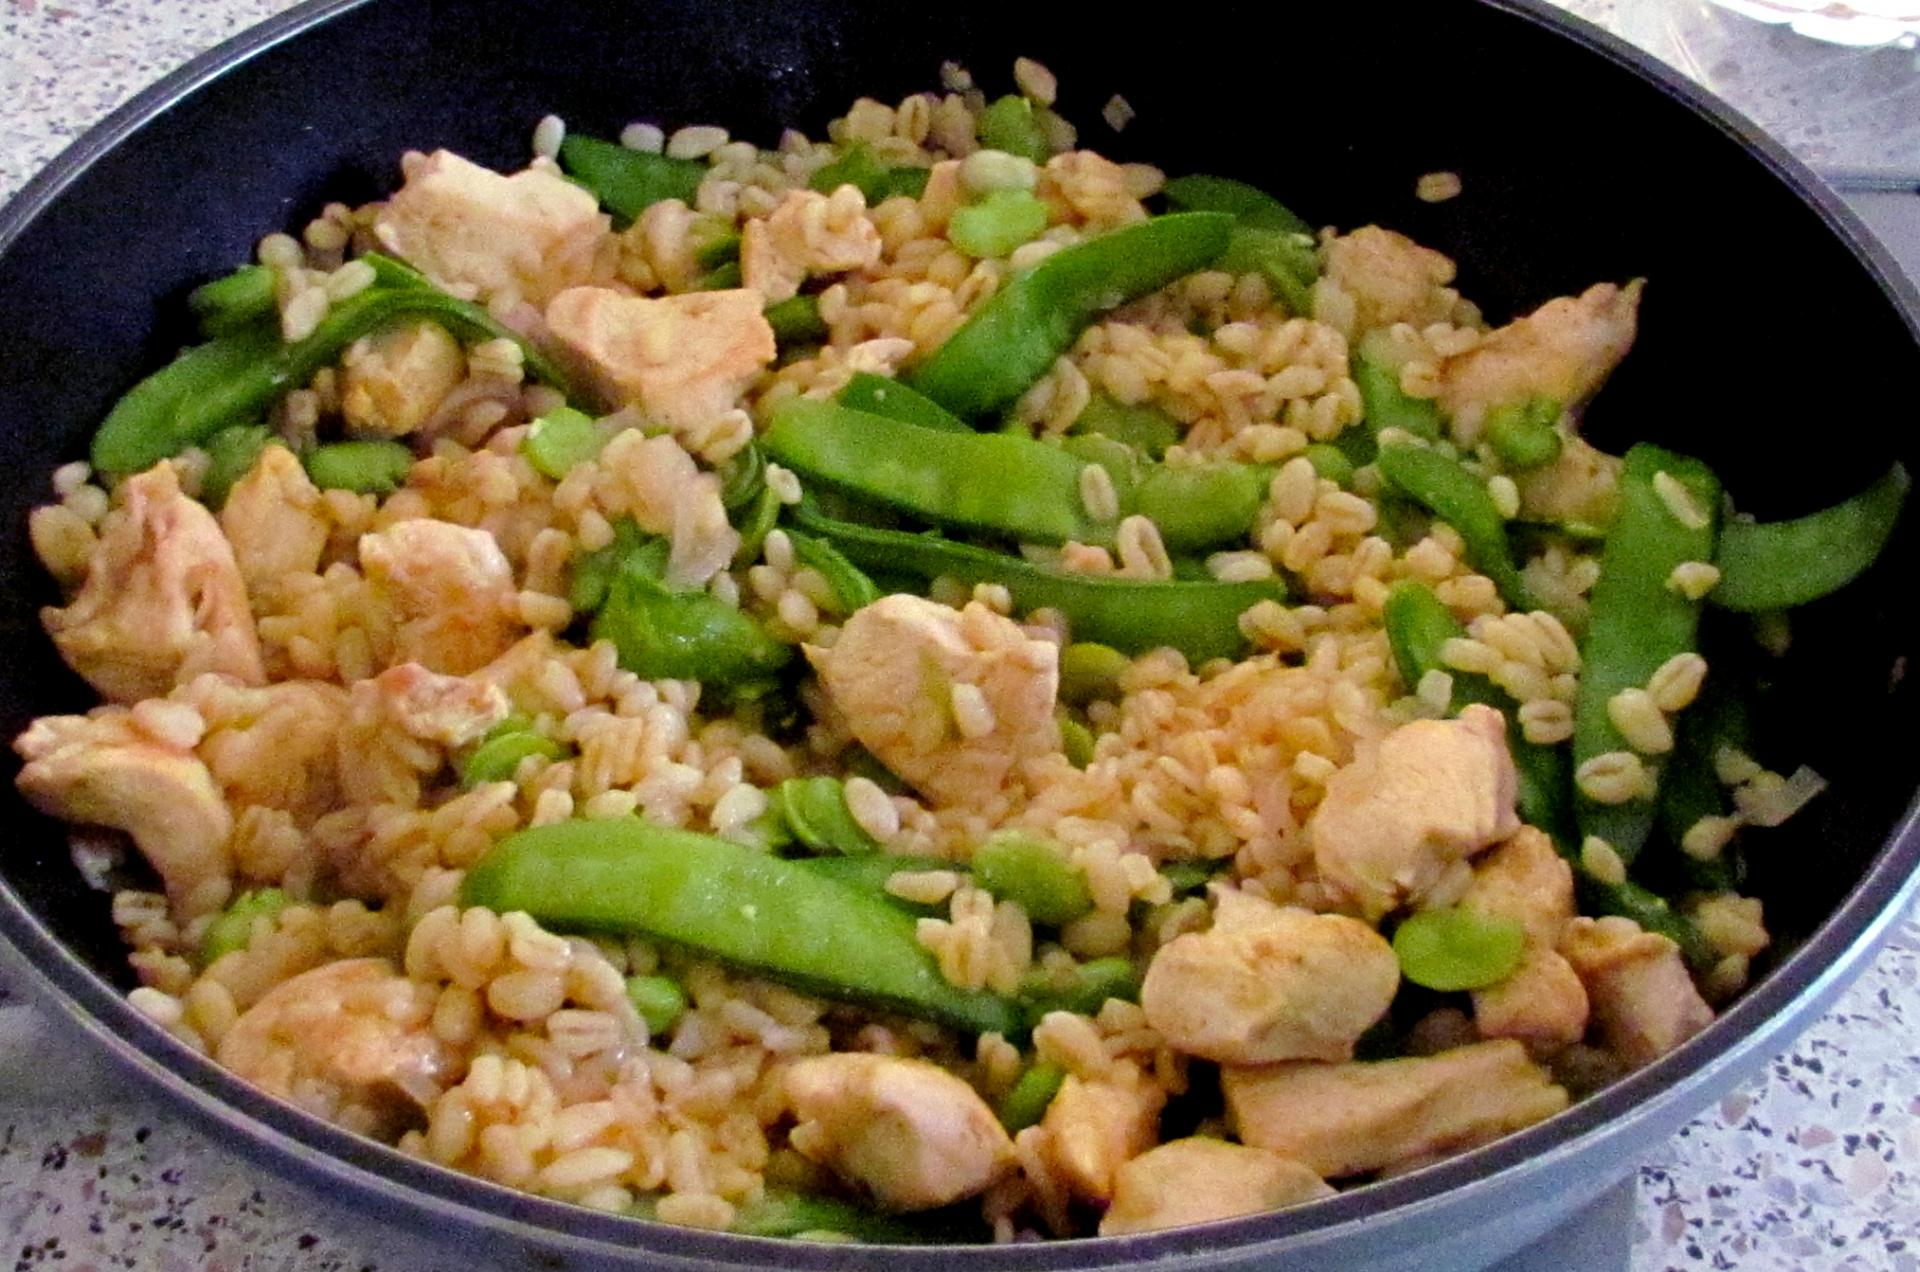 Poulet curry bl f ve pois gourmand - Cuisiner les pois gourmands ...